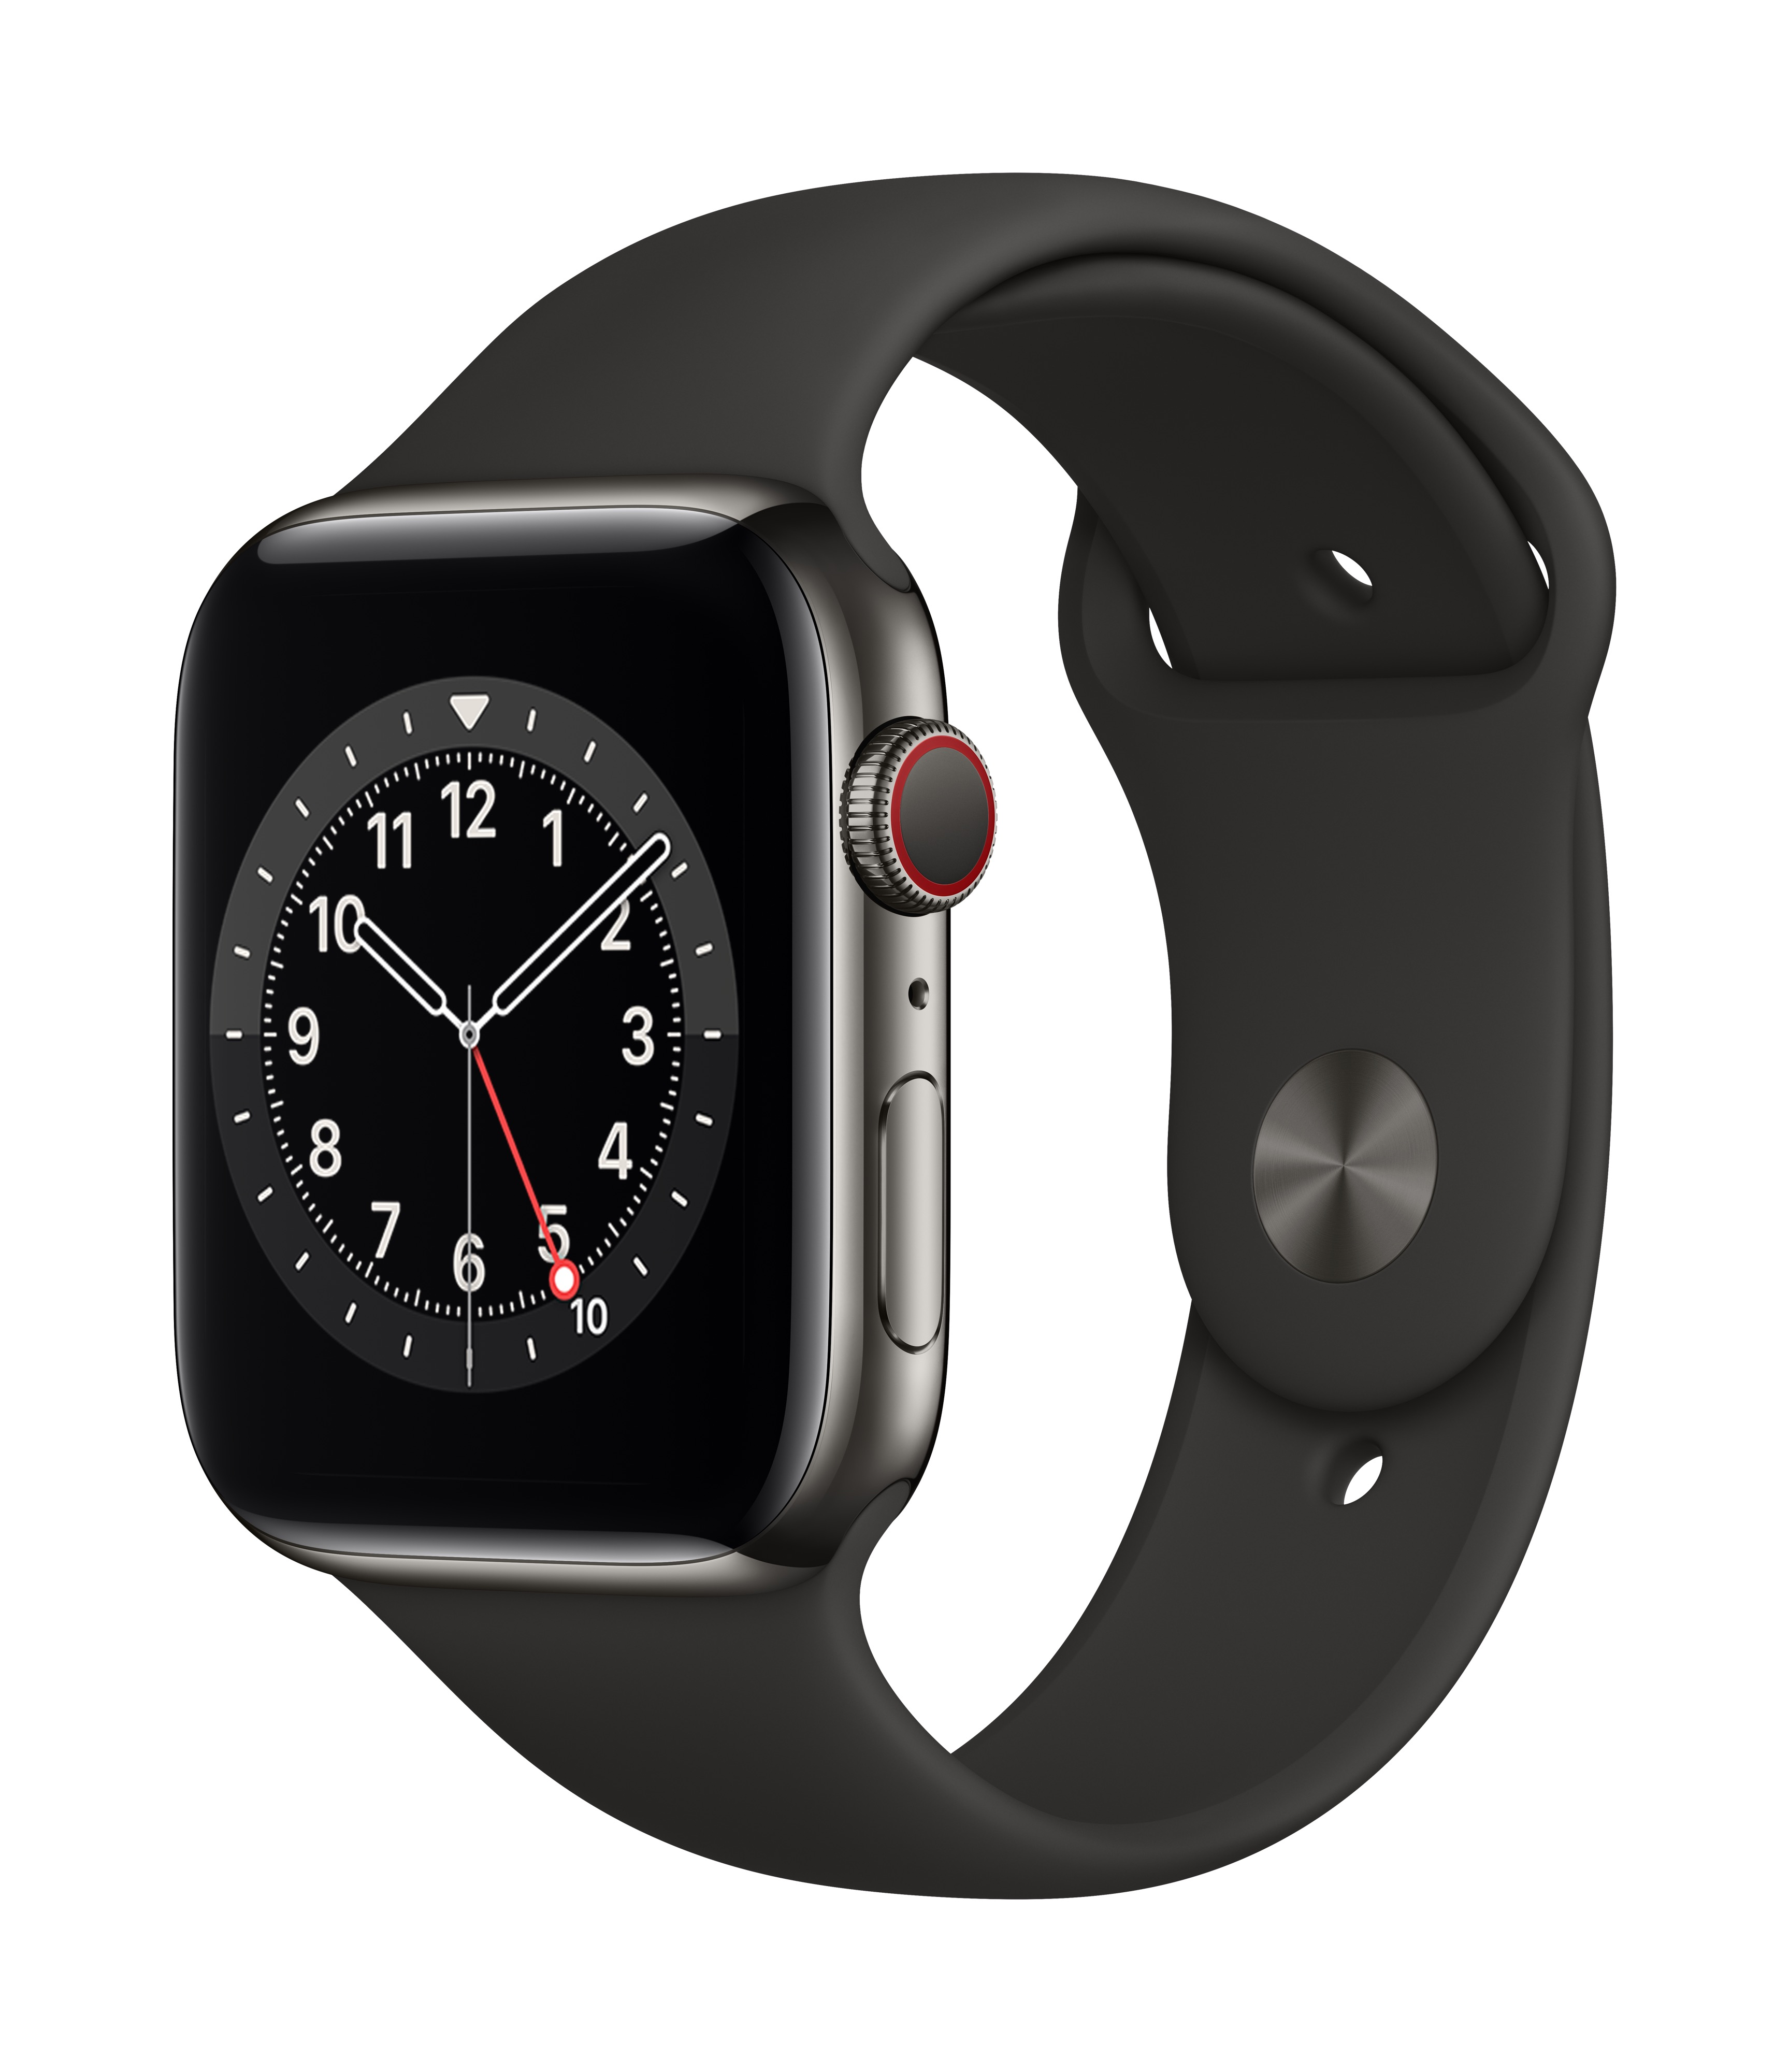 Apple Watch Series 6 GPS + Cellular 44mm Graphite Stainless Steel Case w/ Black Sport Band at Small Dog Electronics